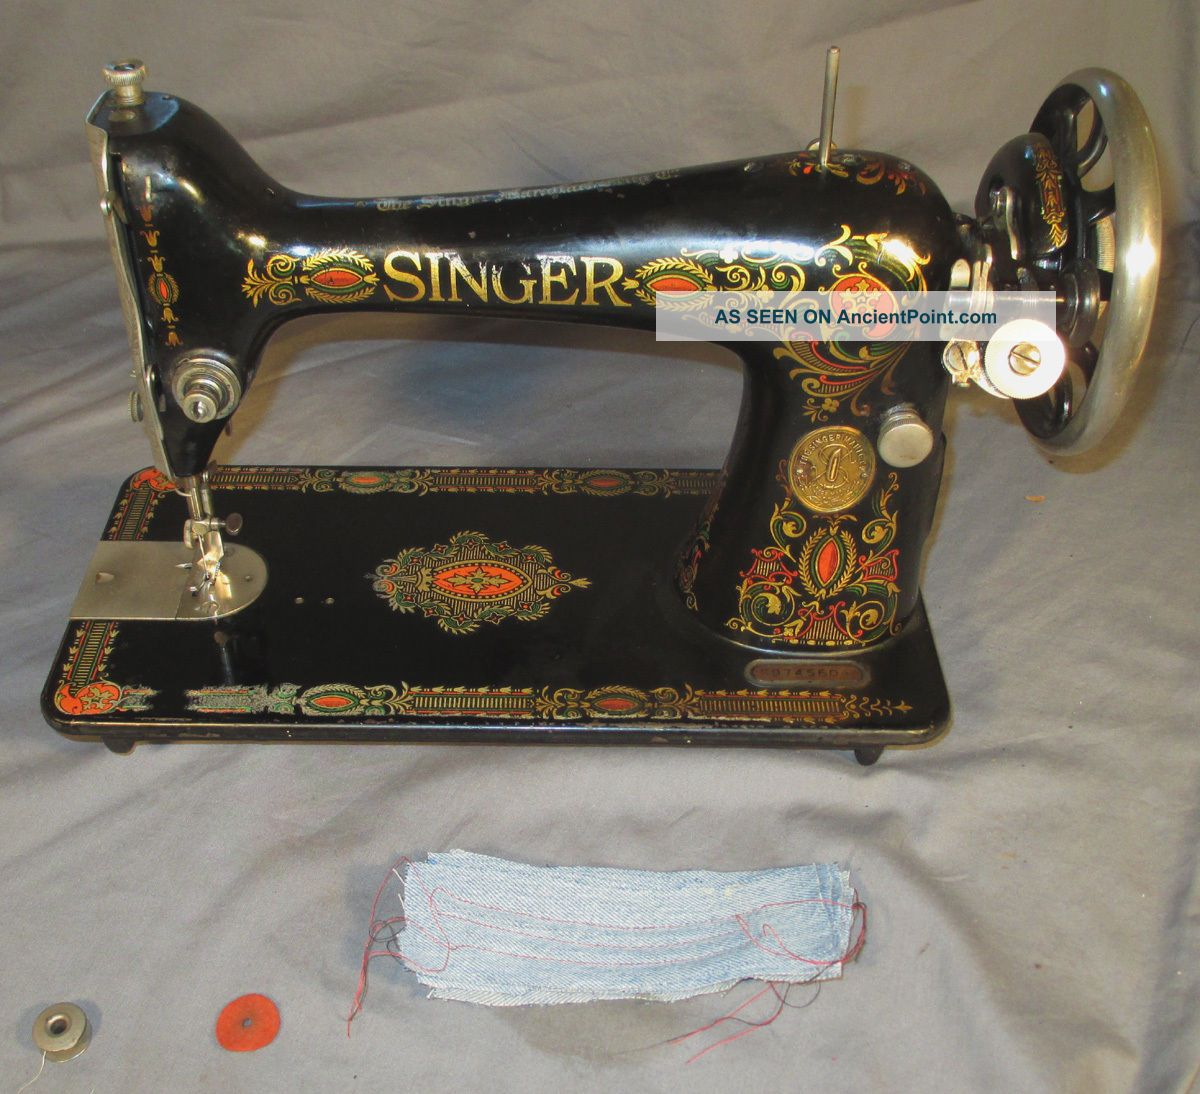 Serviced Antique 1923 Singer 66 - 1 66 - 4 Red Eye Treadle Sewing Machine See Video Sewing Machines photo